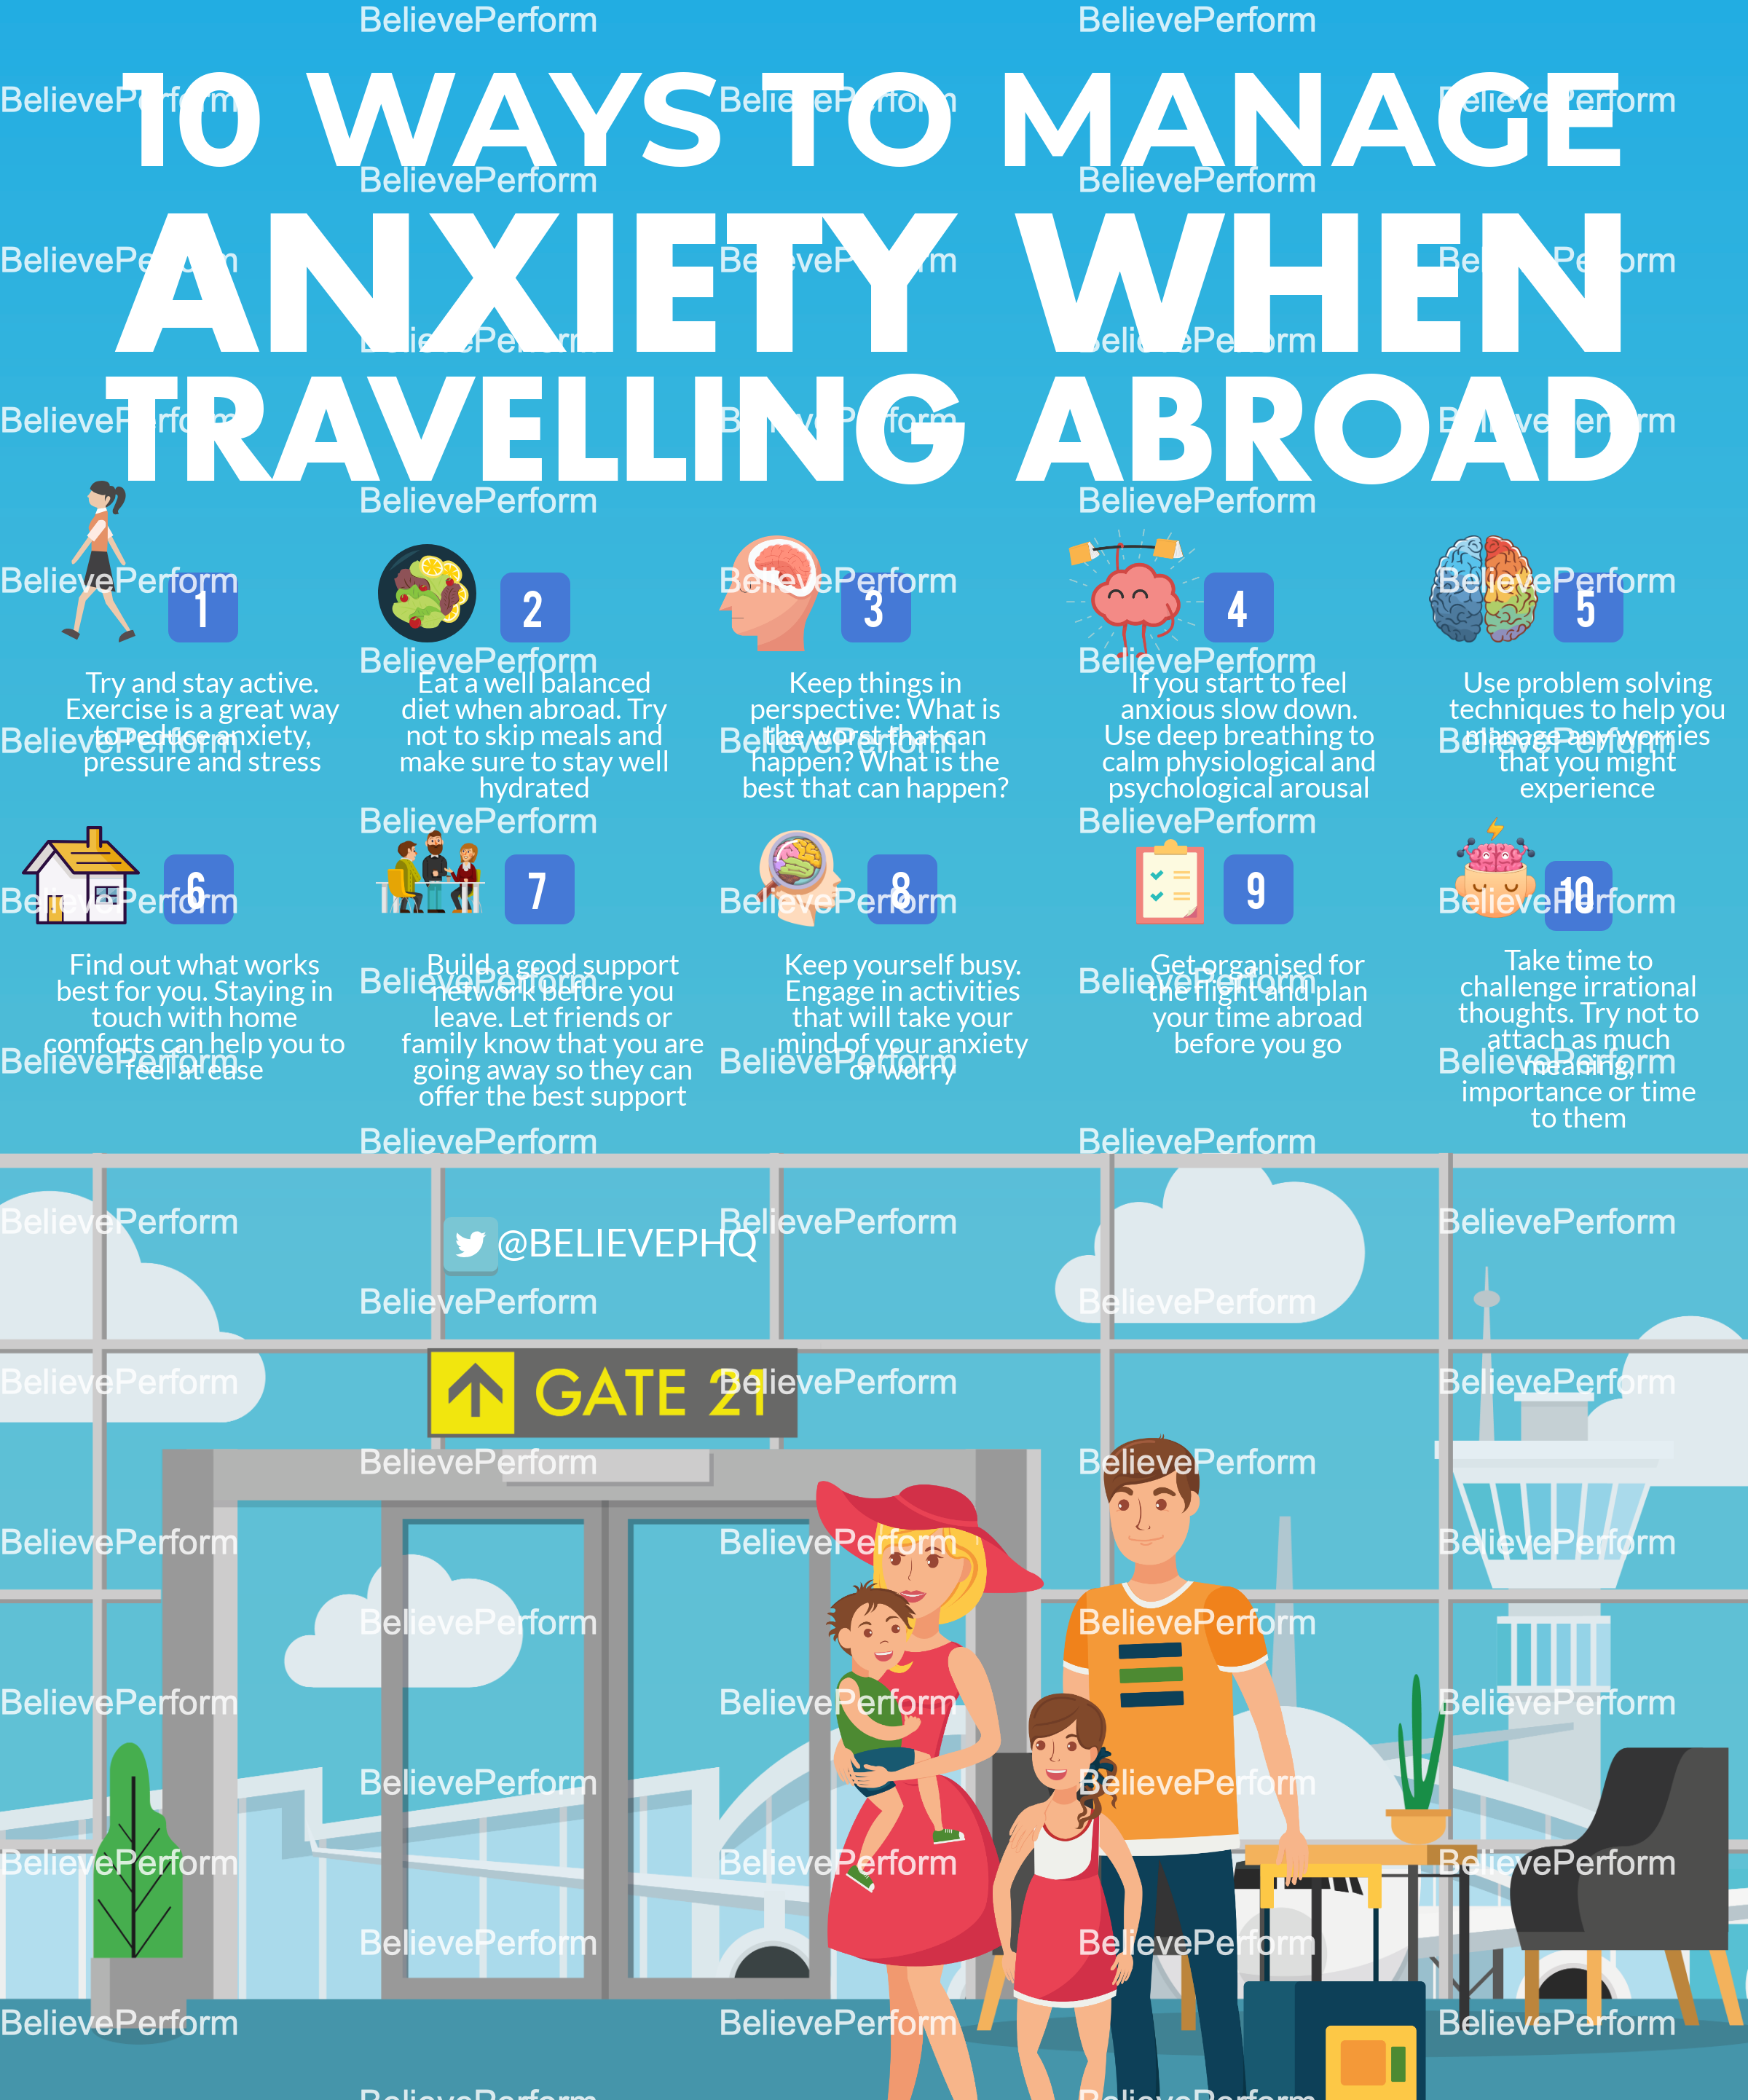 10 ways to manage anxiety when travelling abroad